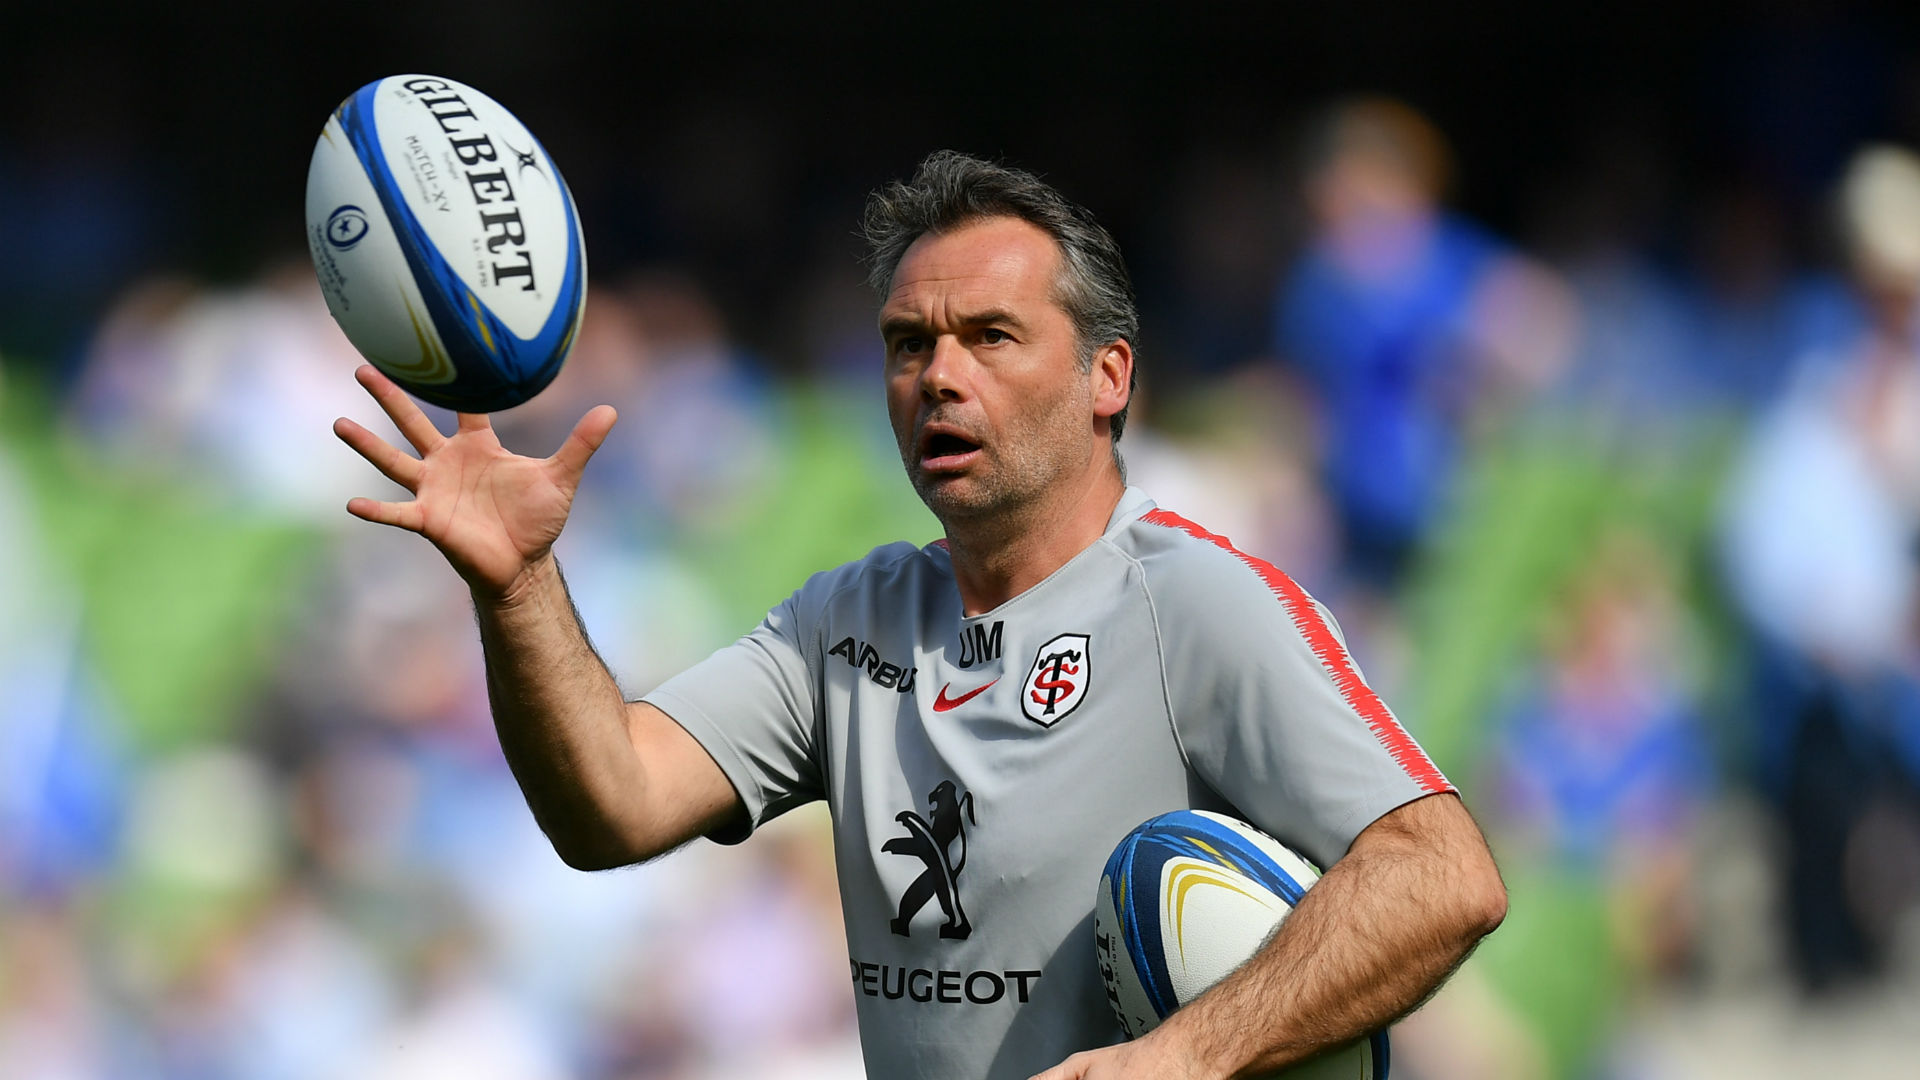 After Toulouse beat Clermont Auvergne to win the Top 14 title for the 20th time, Ugo Mola paid tribute to his players.